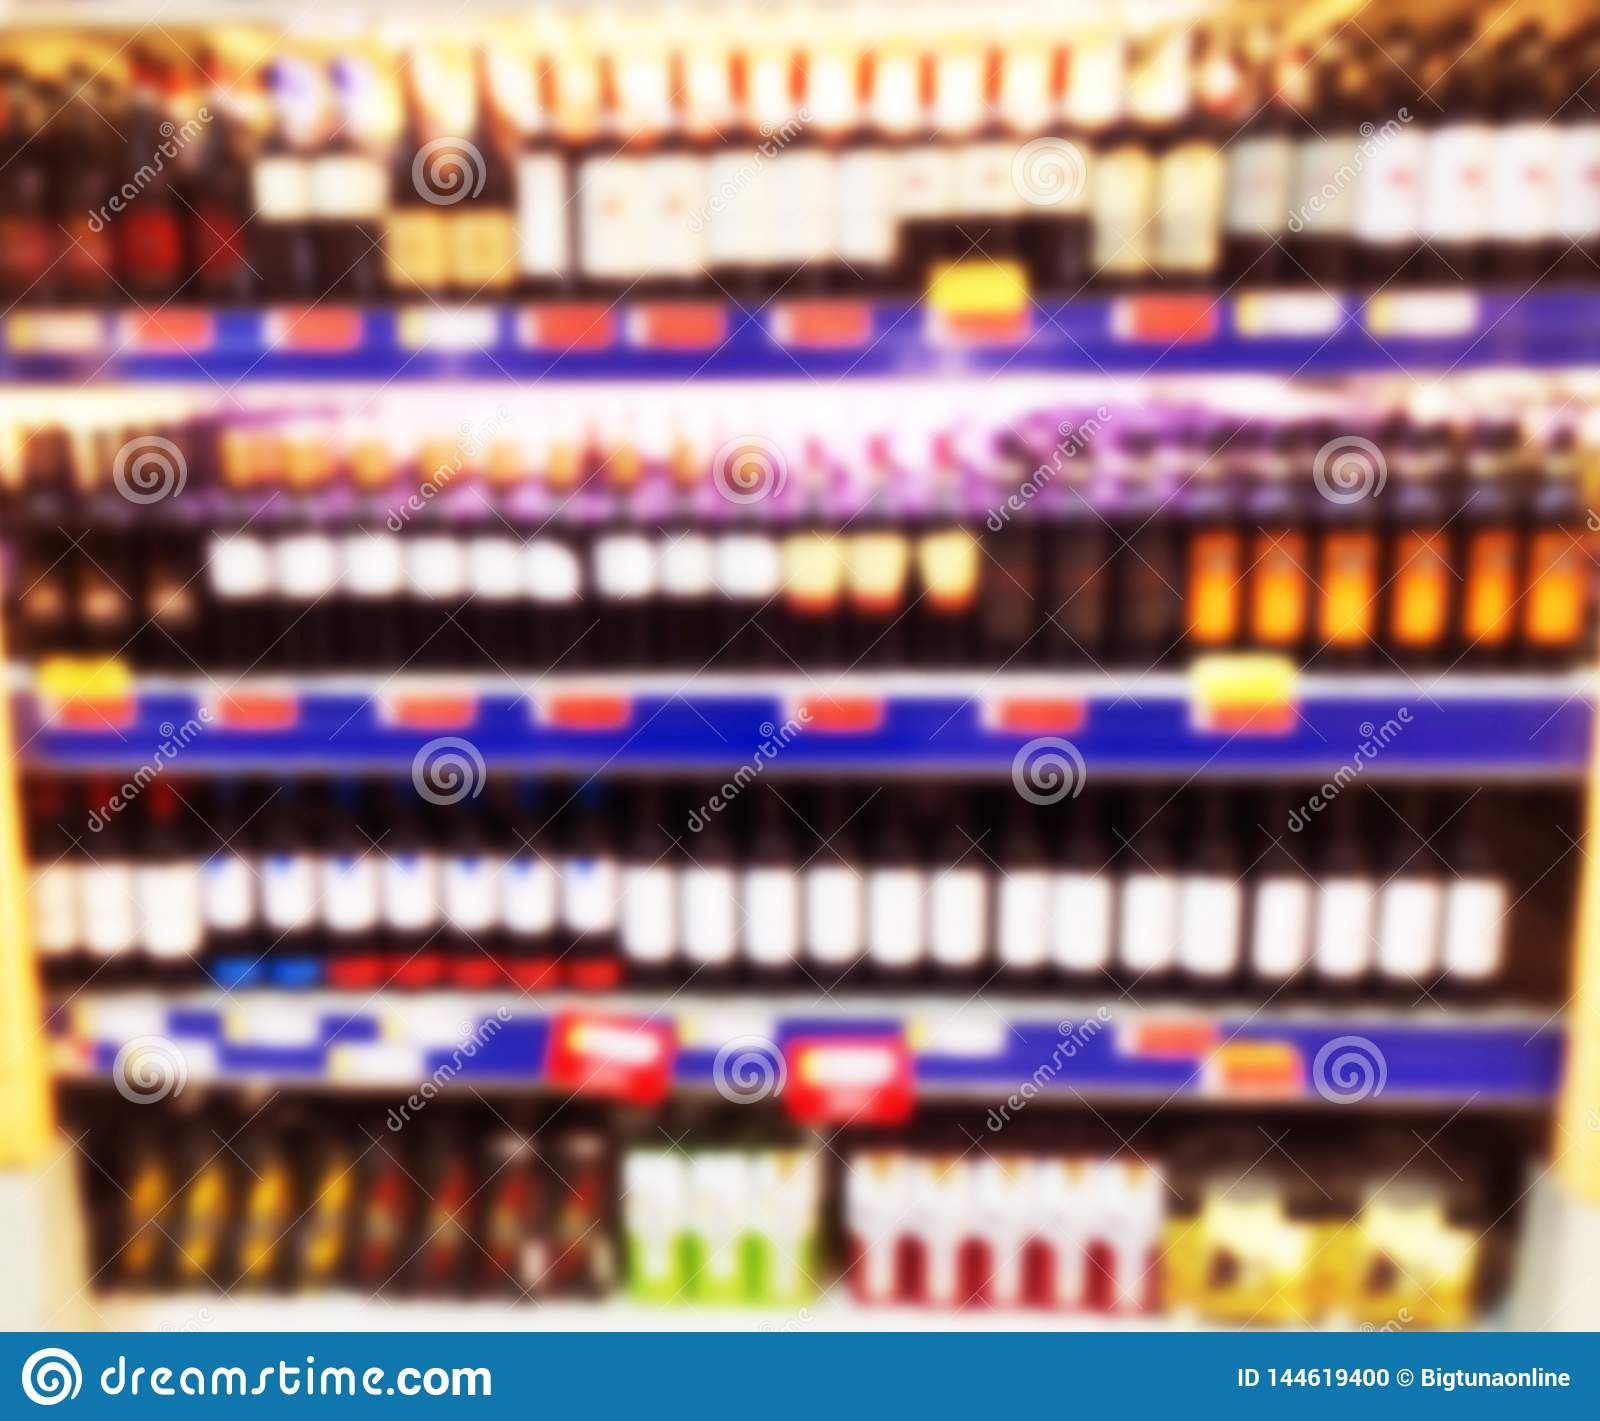 Abstract blurred supermarket store and refrigerators in department store. Interior shopping mall defocused background. Business fo